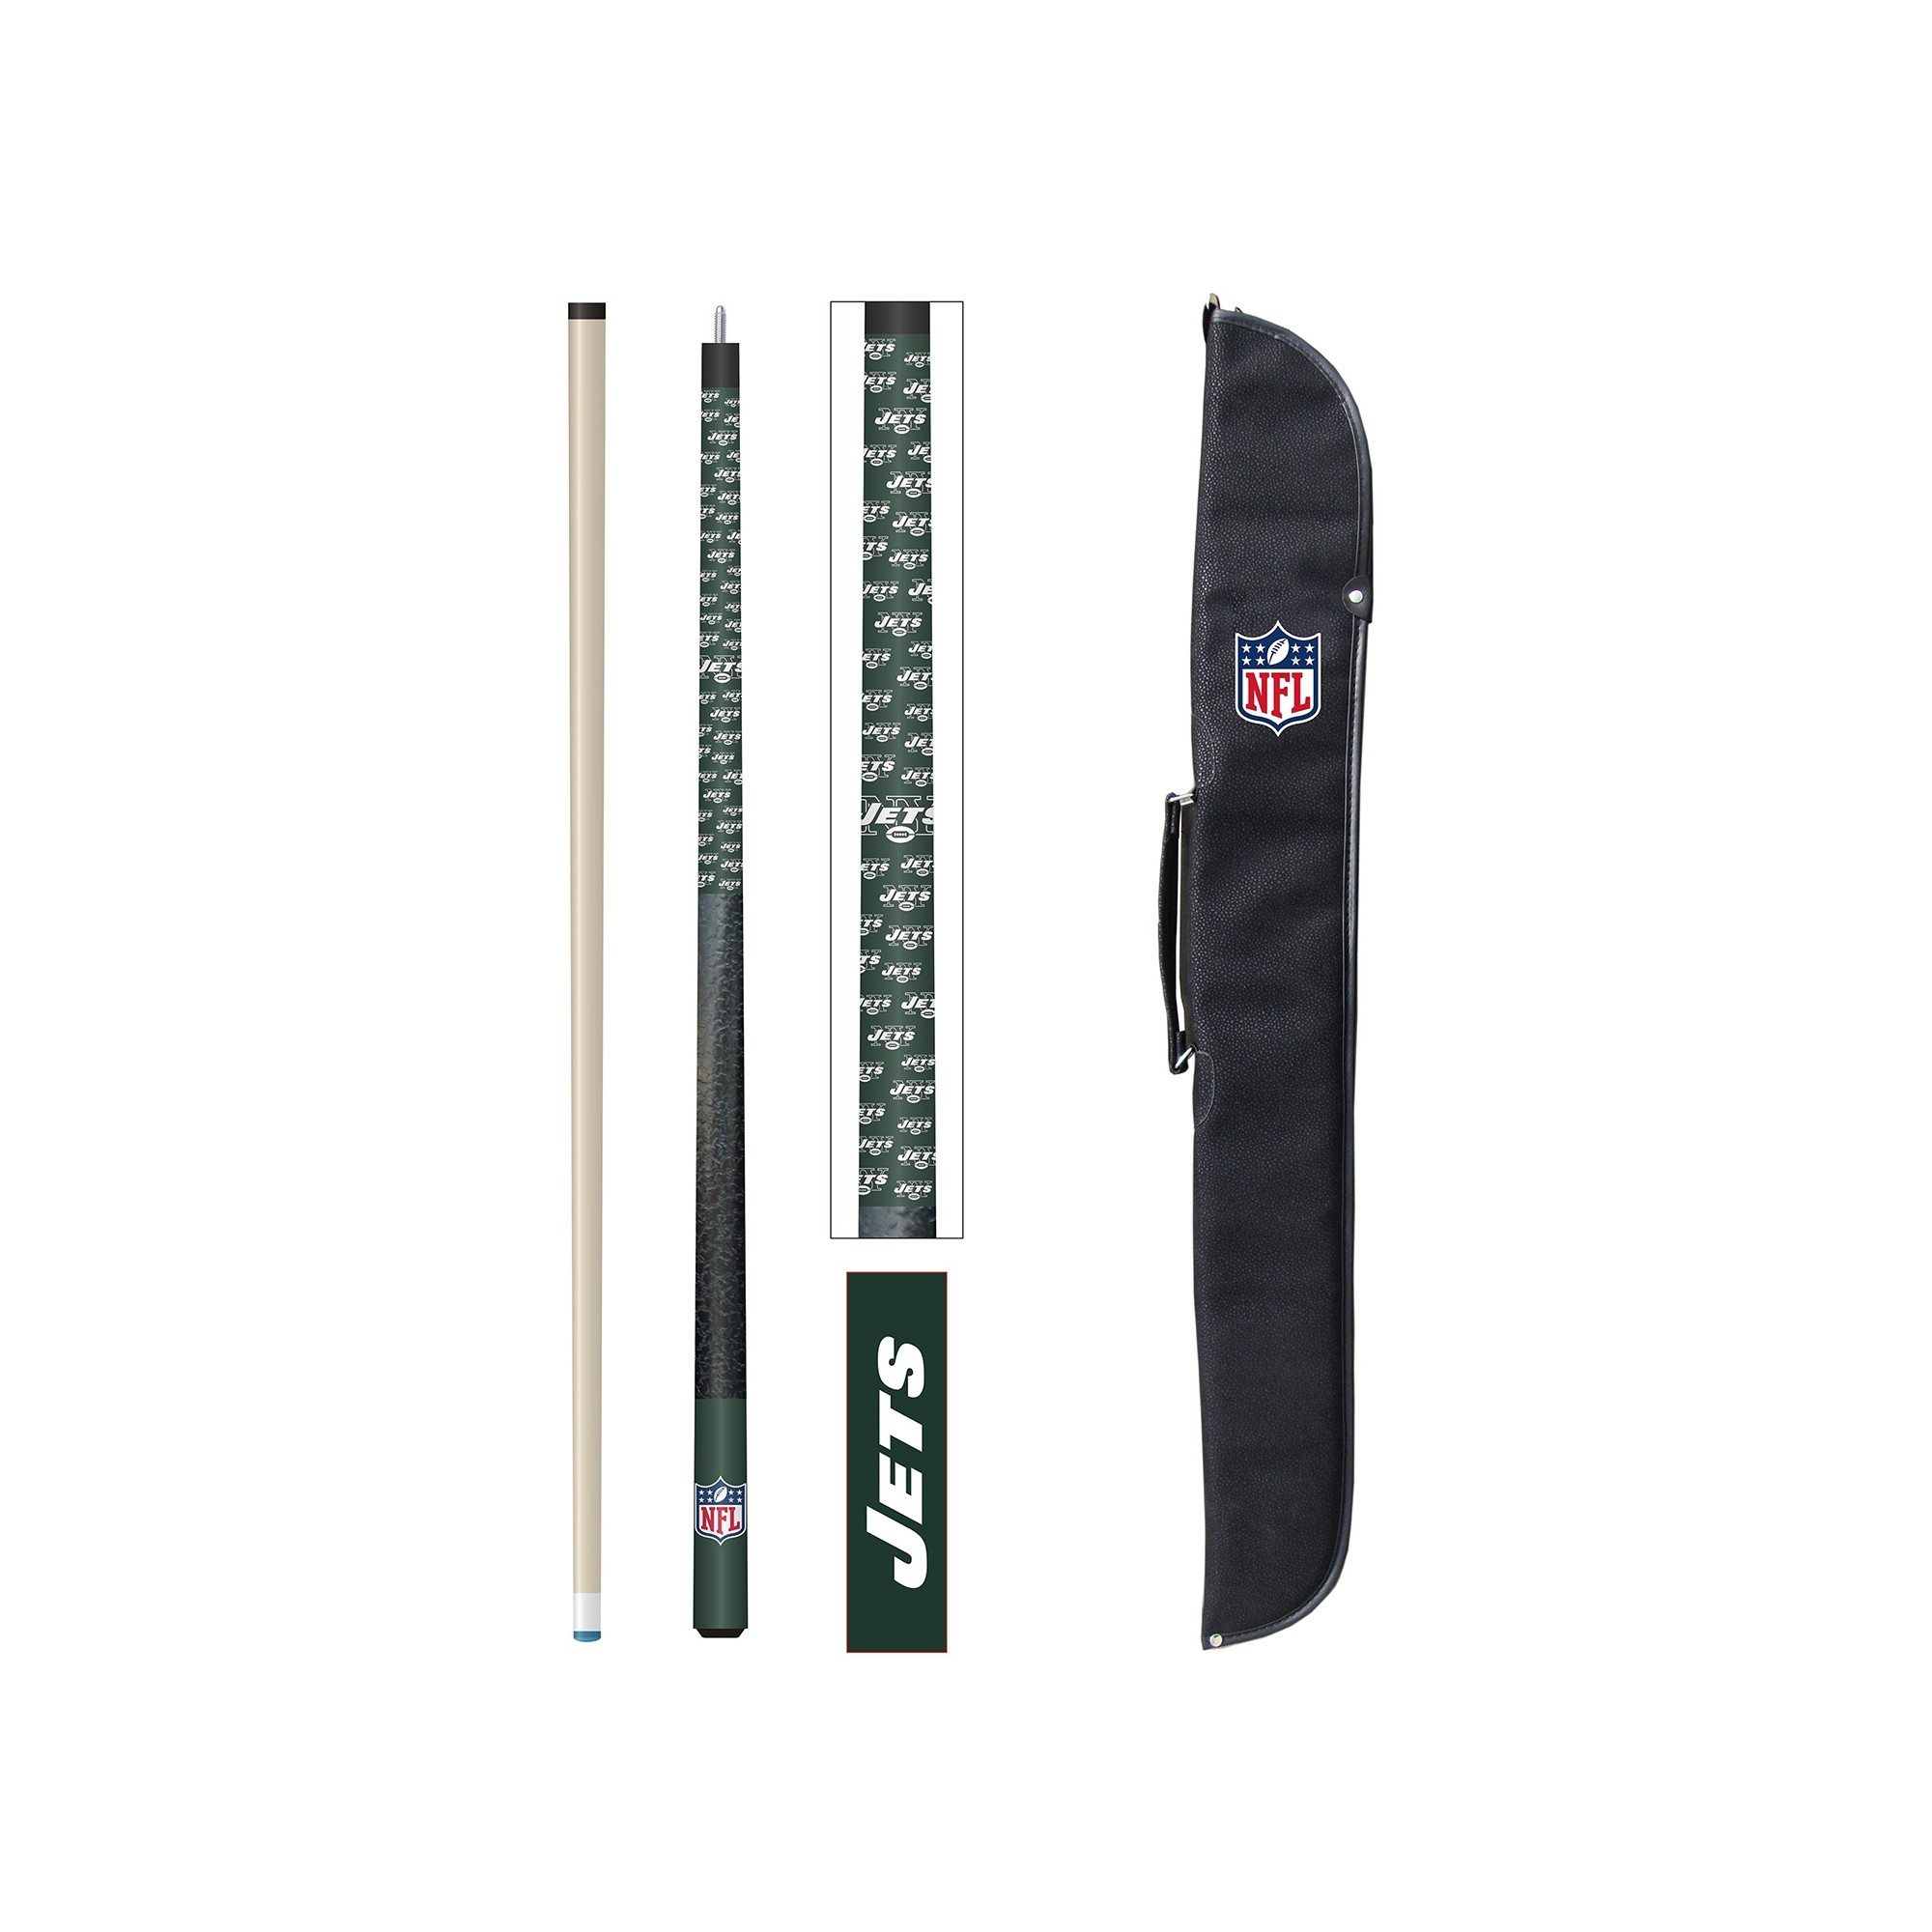 Nfl Football New York Jets Cases - 72-1012 - New York Jets Cue And Case Set 72-1012